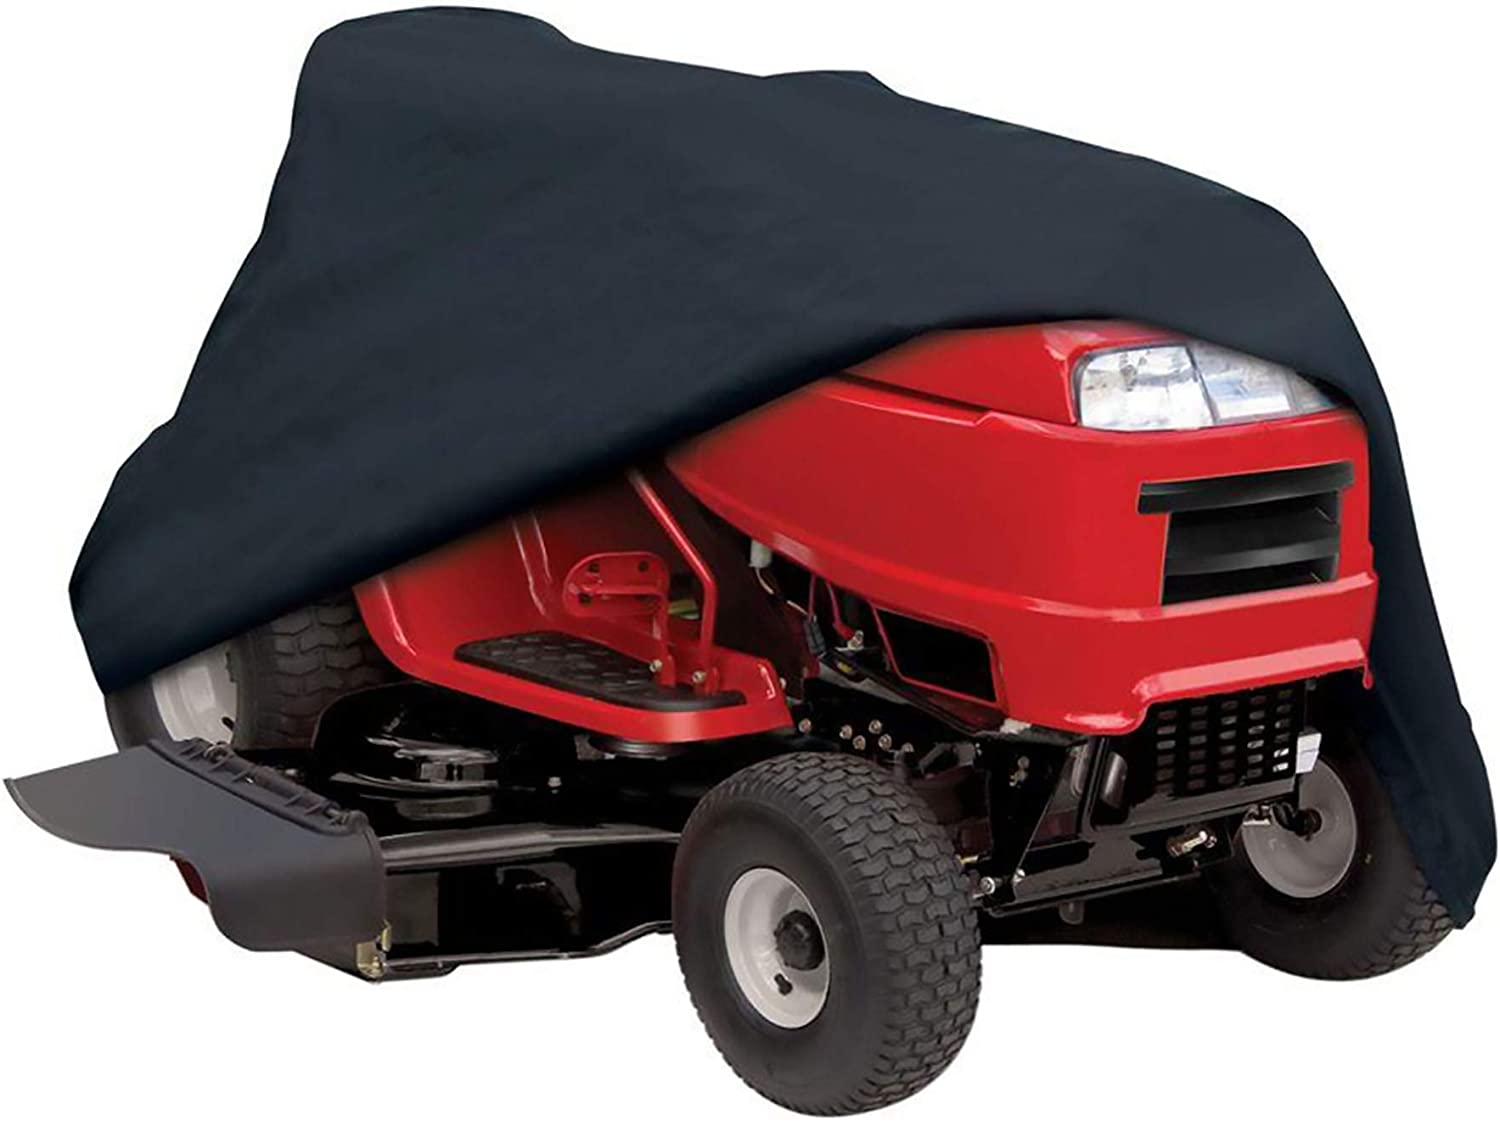 Lawn Mower Cover Waterproof, 600D Heavy Duty UV Resistant Breathable Oxford Fabric Riding Mower Cover, Universal Size Tractor Cover Fits Decks up to 54